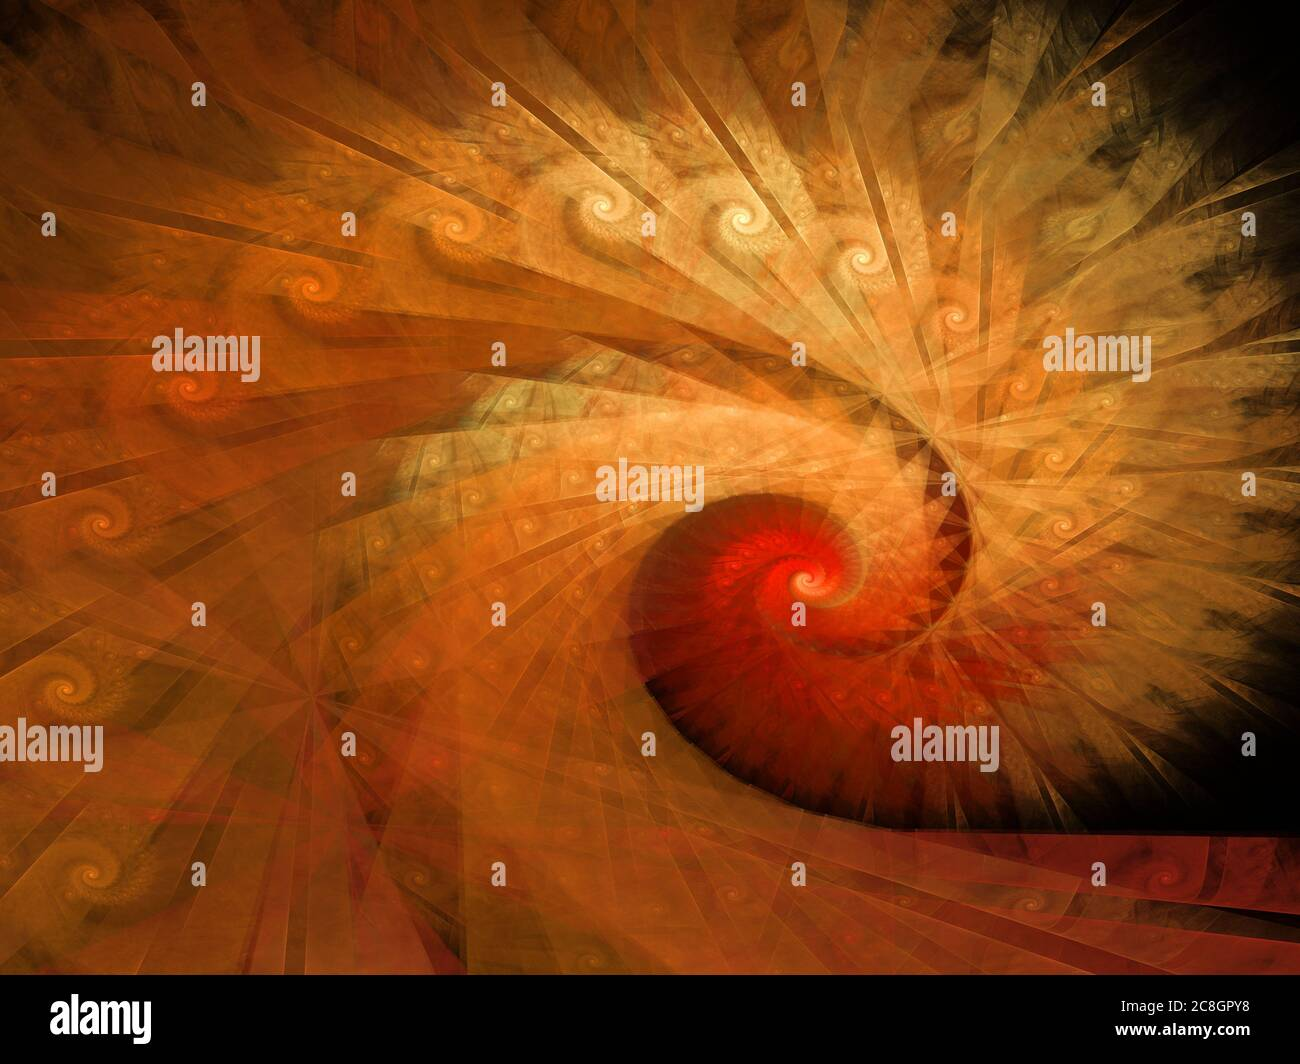 Spiral Art - Flame Fractal Stock Photo